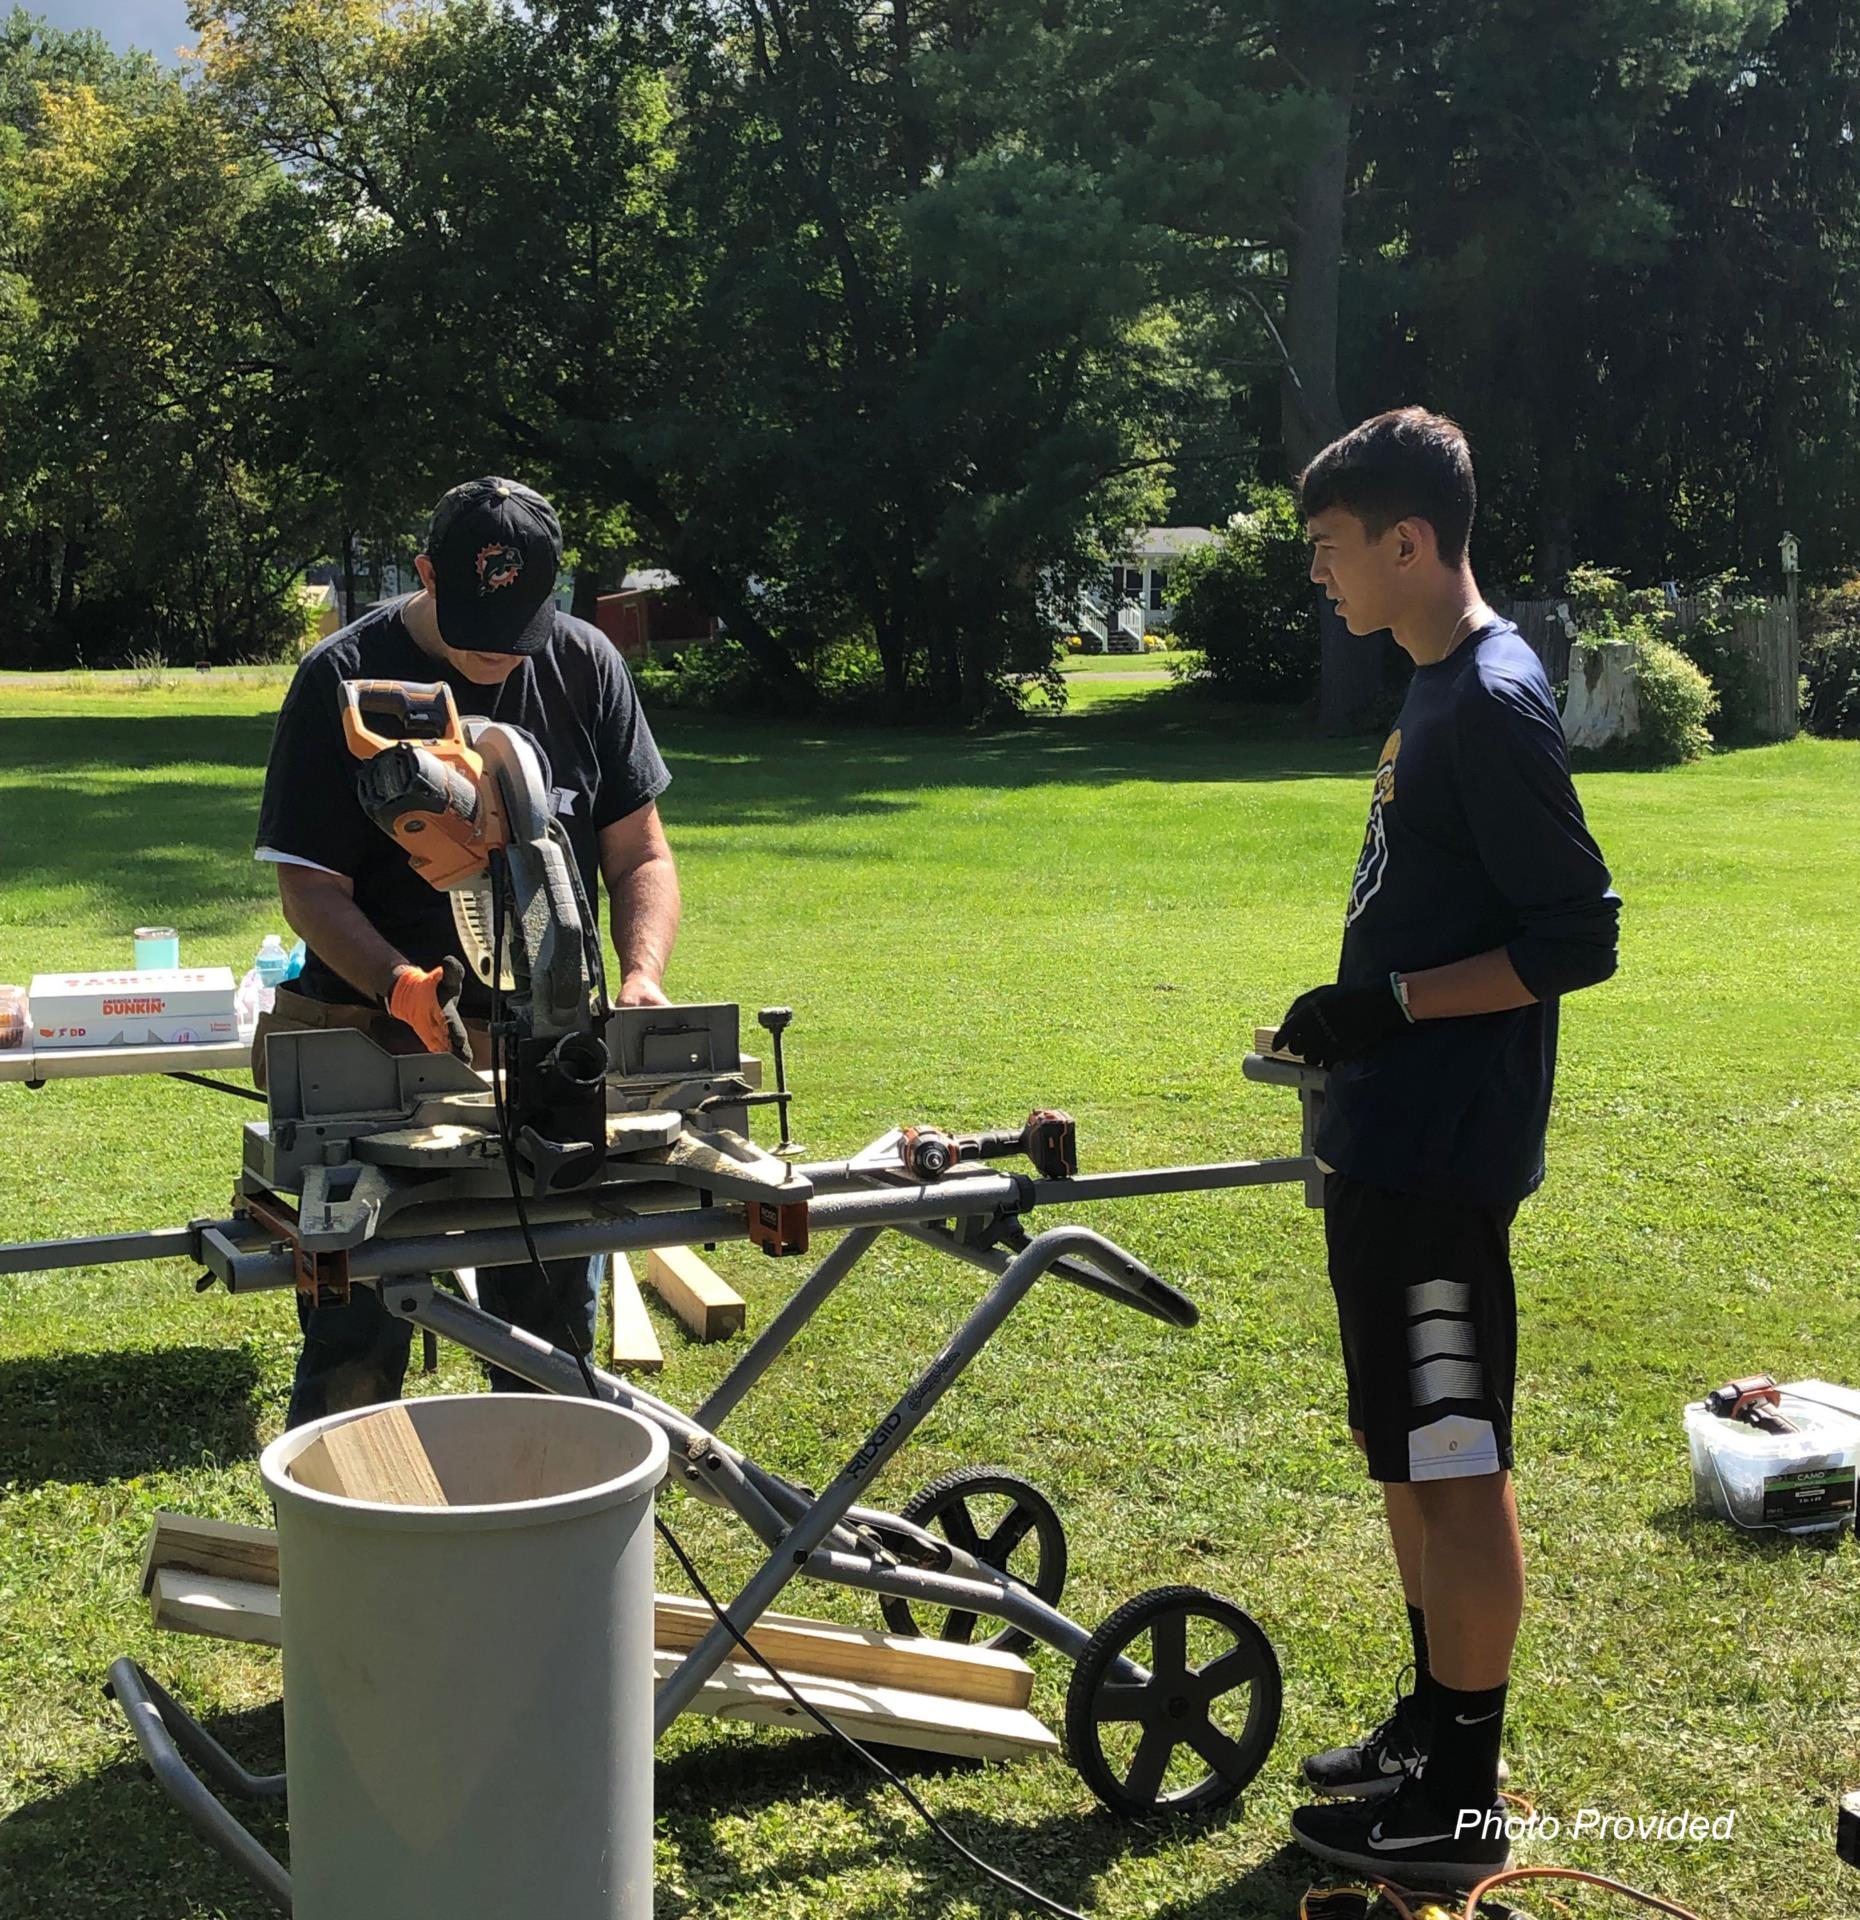 student and adult working with equipment